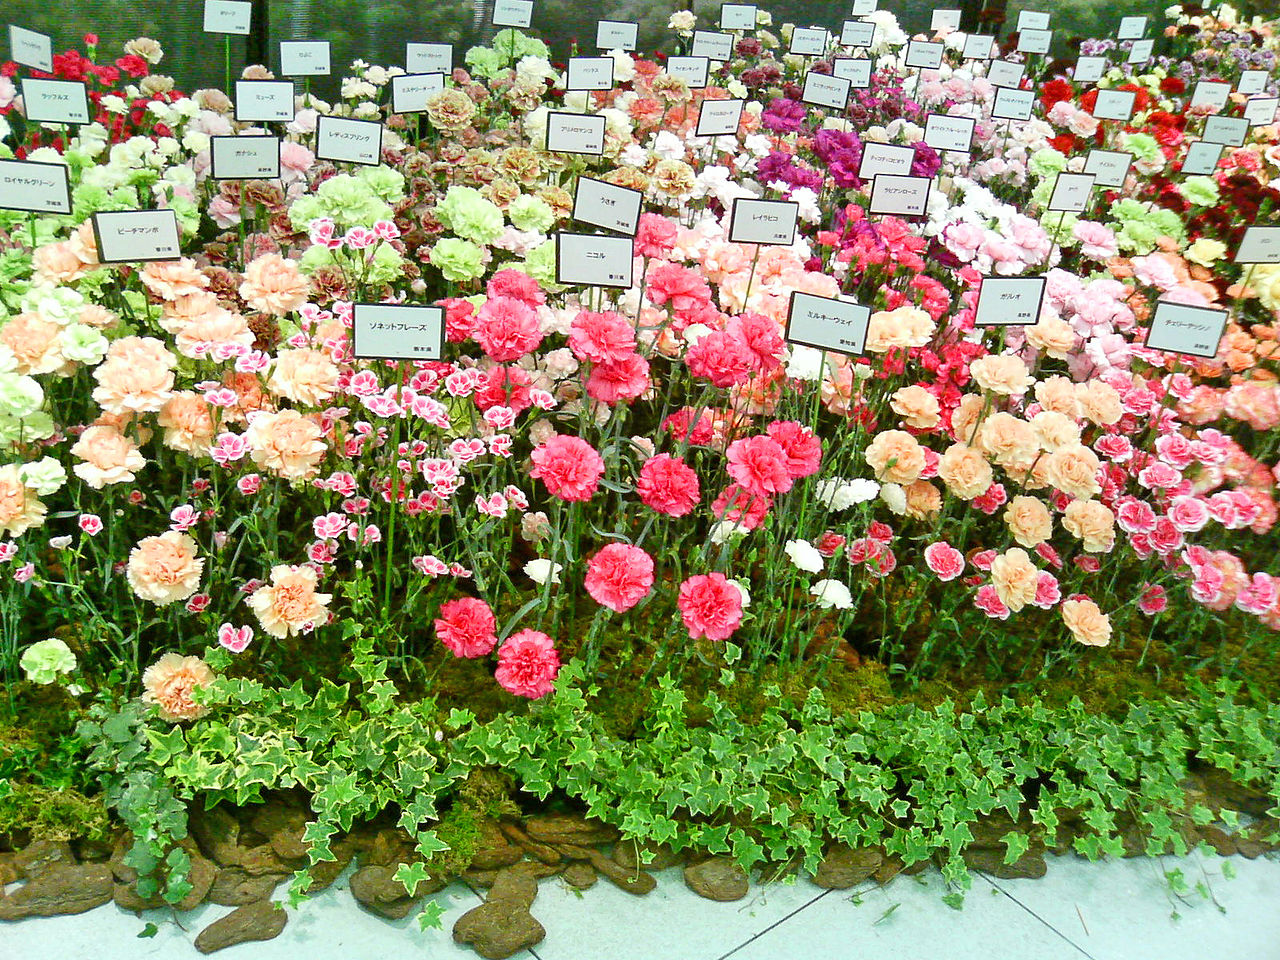 Carnation_Varieties_-_Mother's_Day_-Ginza.jpg